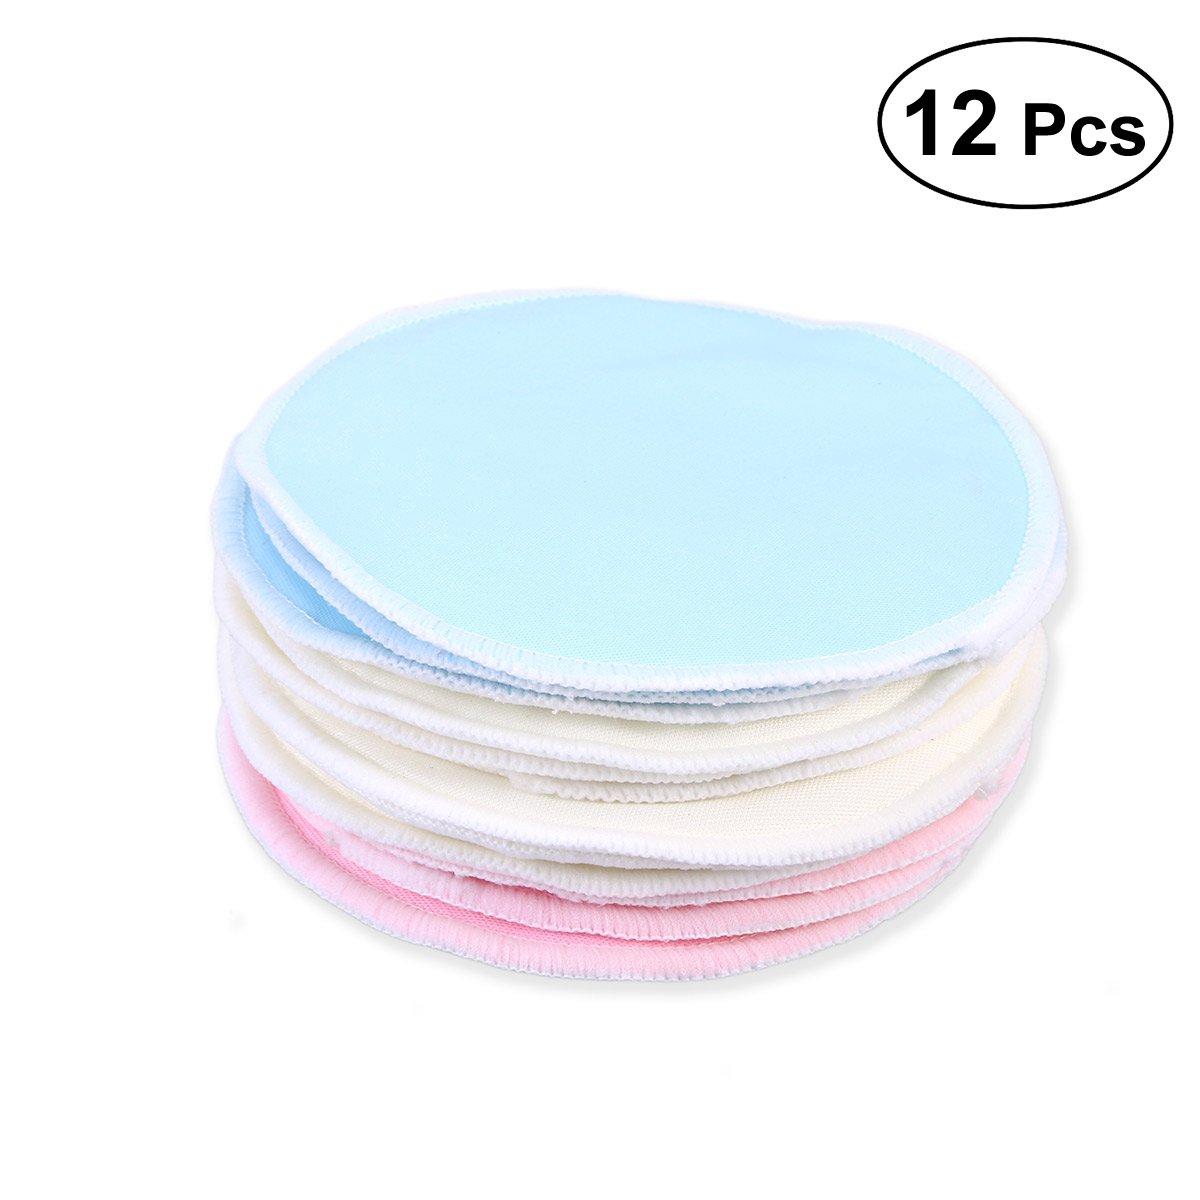 Frcolor 12pcs Bamboo Makeup Remover Pads, Reusable Soft Wash face Pads Skin Care Wash Cloth Pads(3 color)